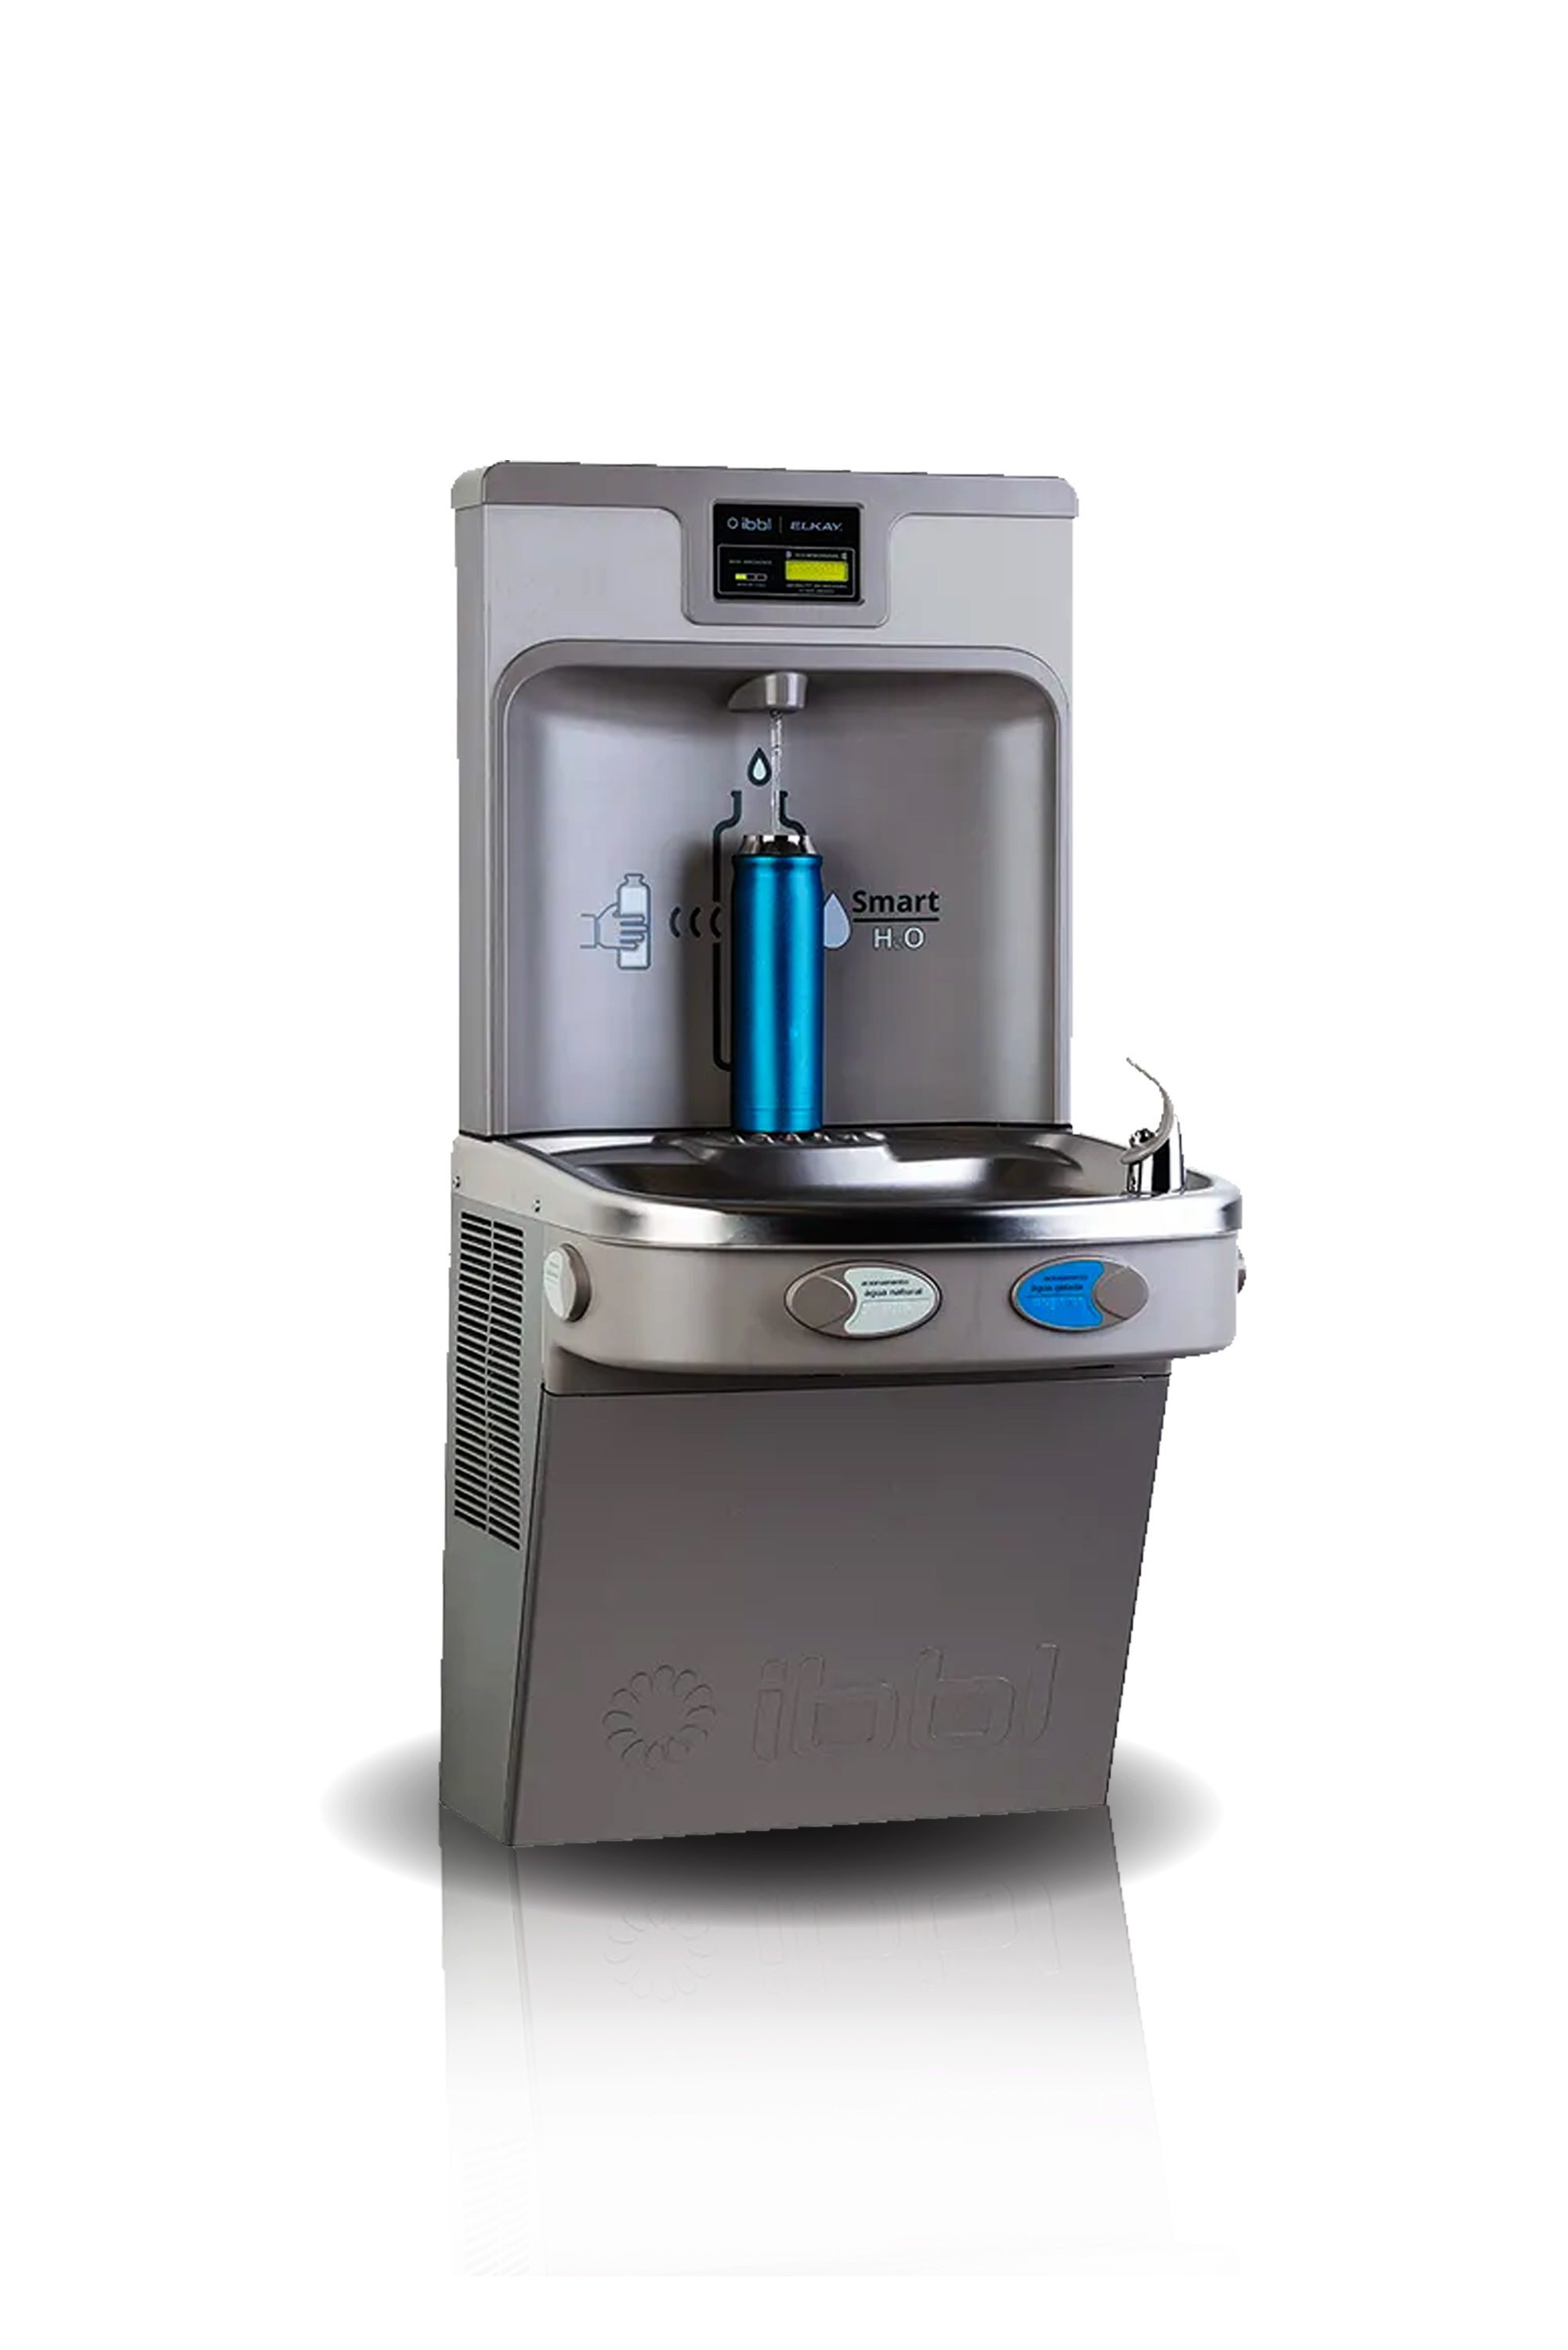 DISPENSER F/N IBBL SMART H20 - ACCESO INCLUSIVO